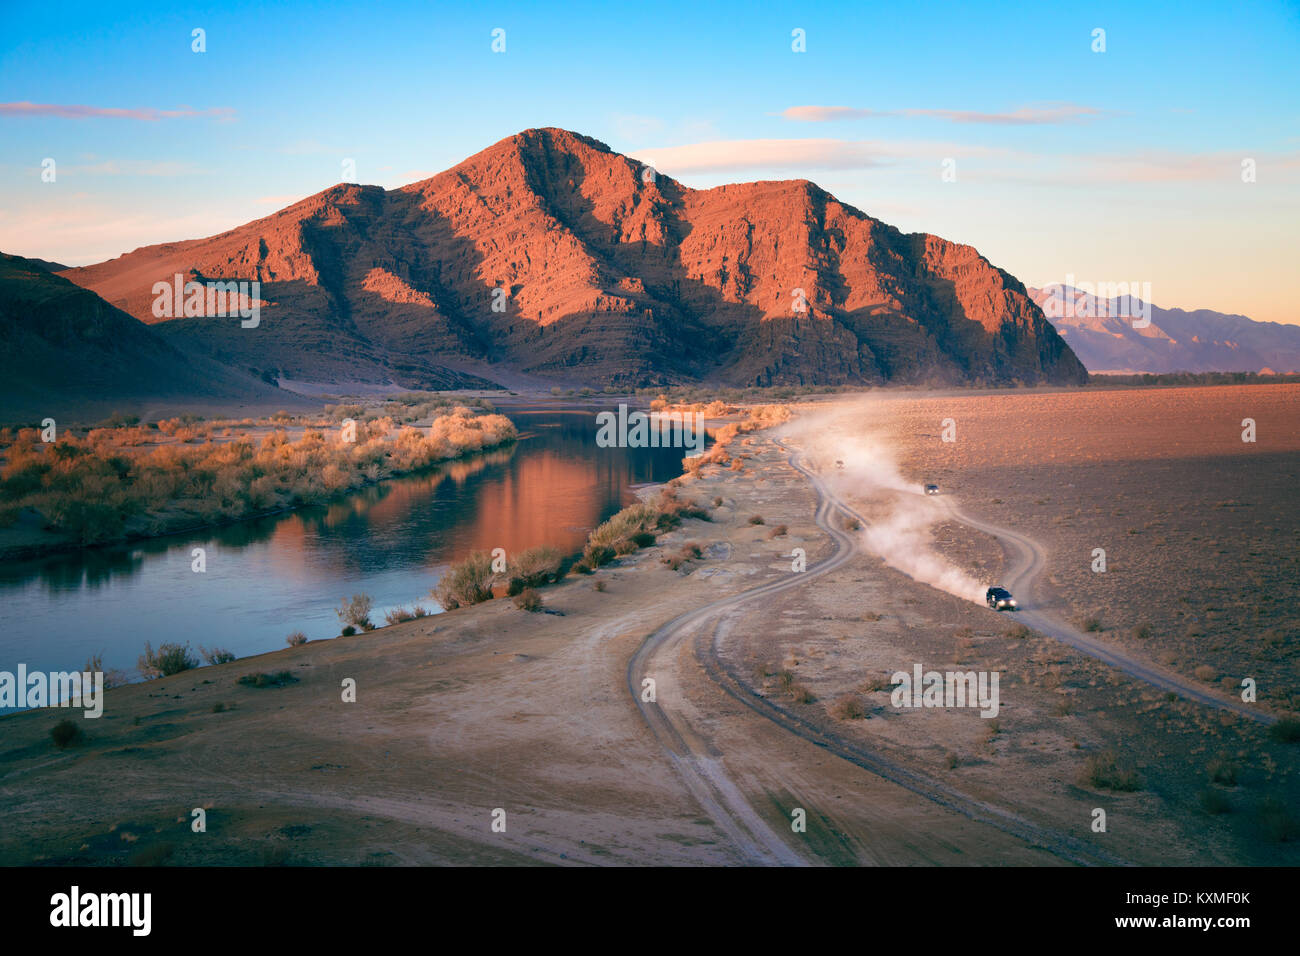 Dirt road cars racing dust cloud sunset landscape Mongolia red mountain river reflection - Stock Image